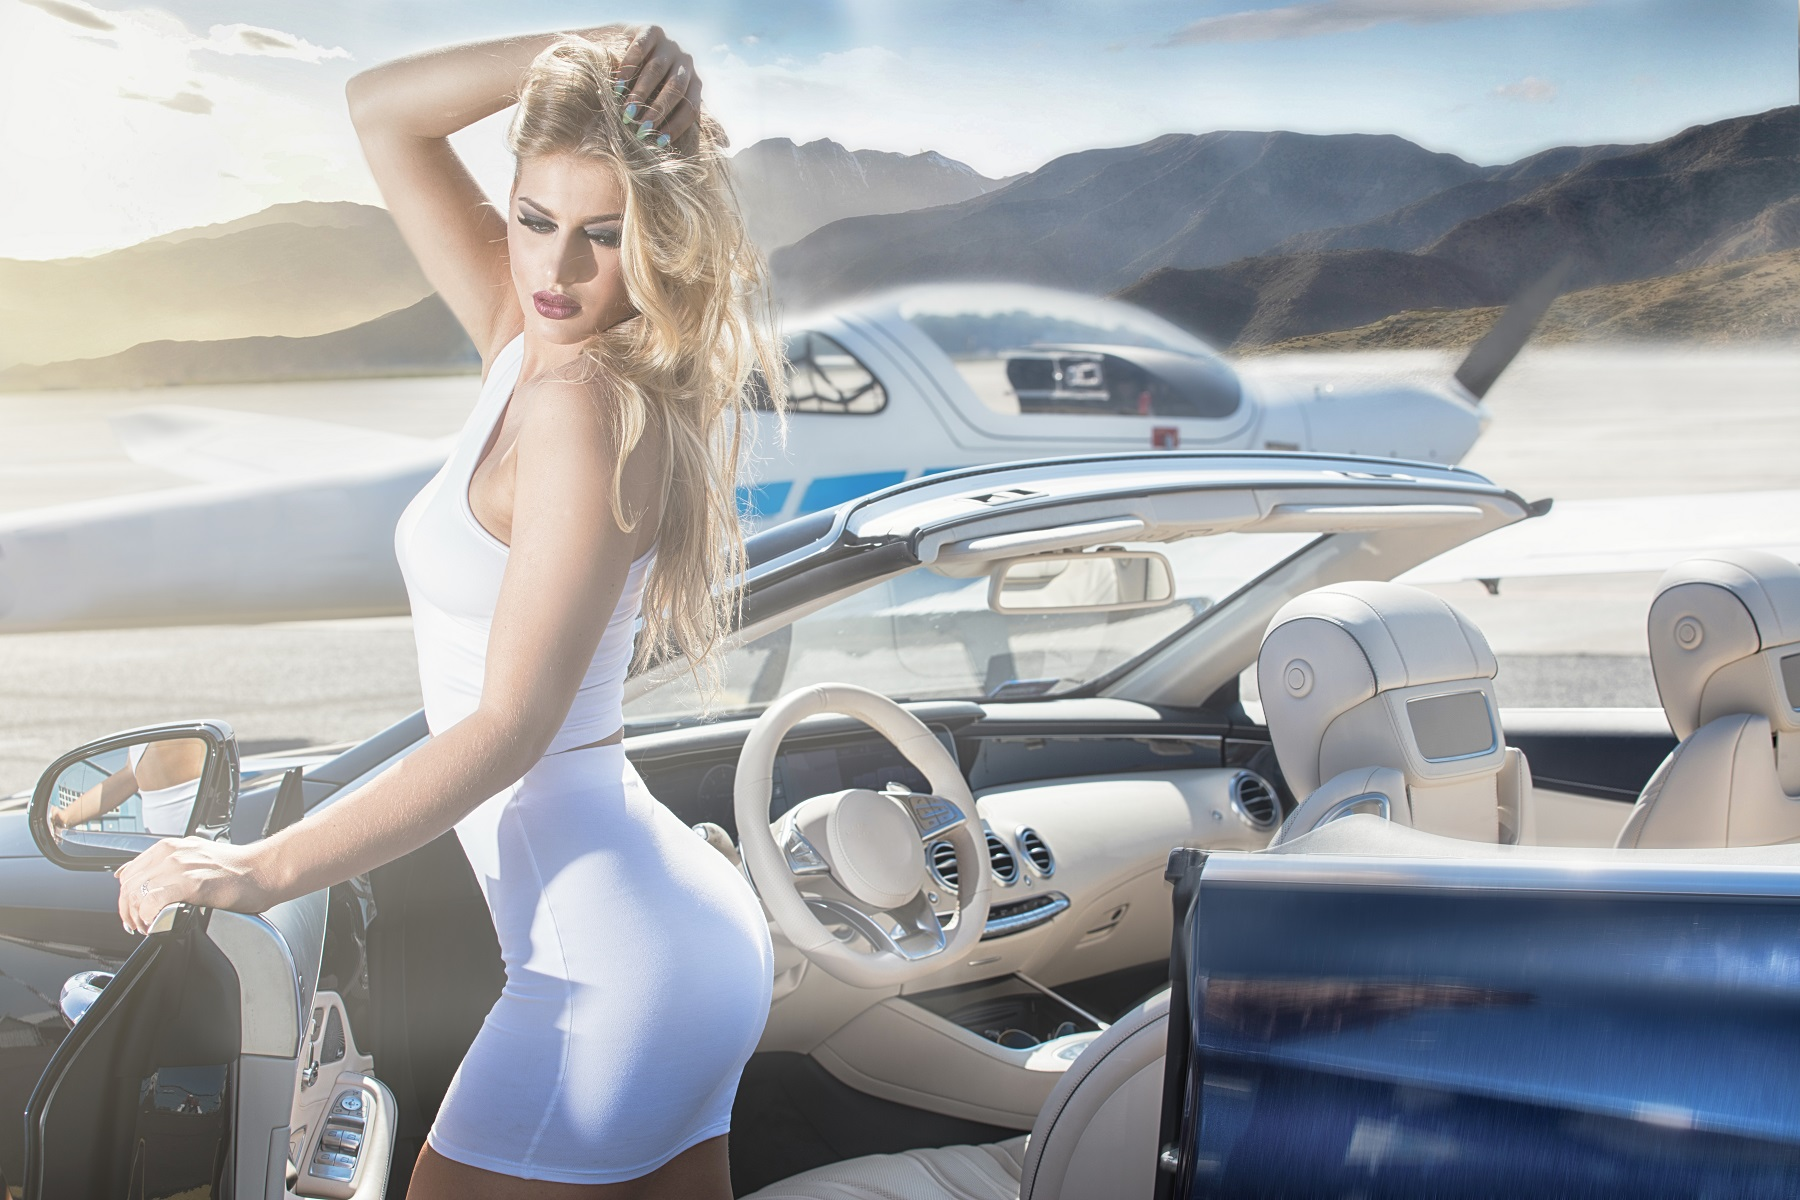 Sexy woman with luxury car and airplane.